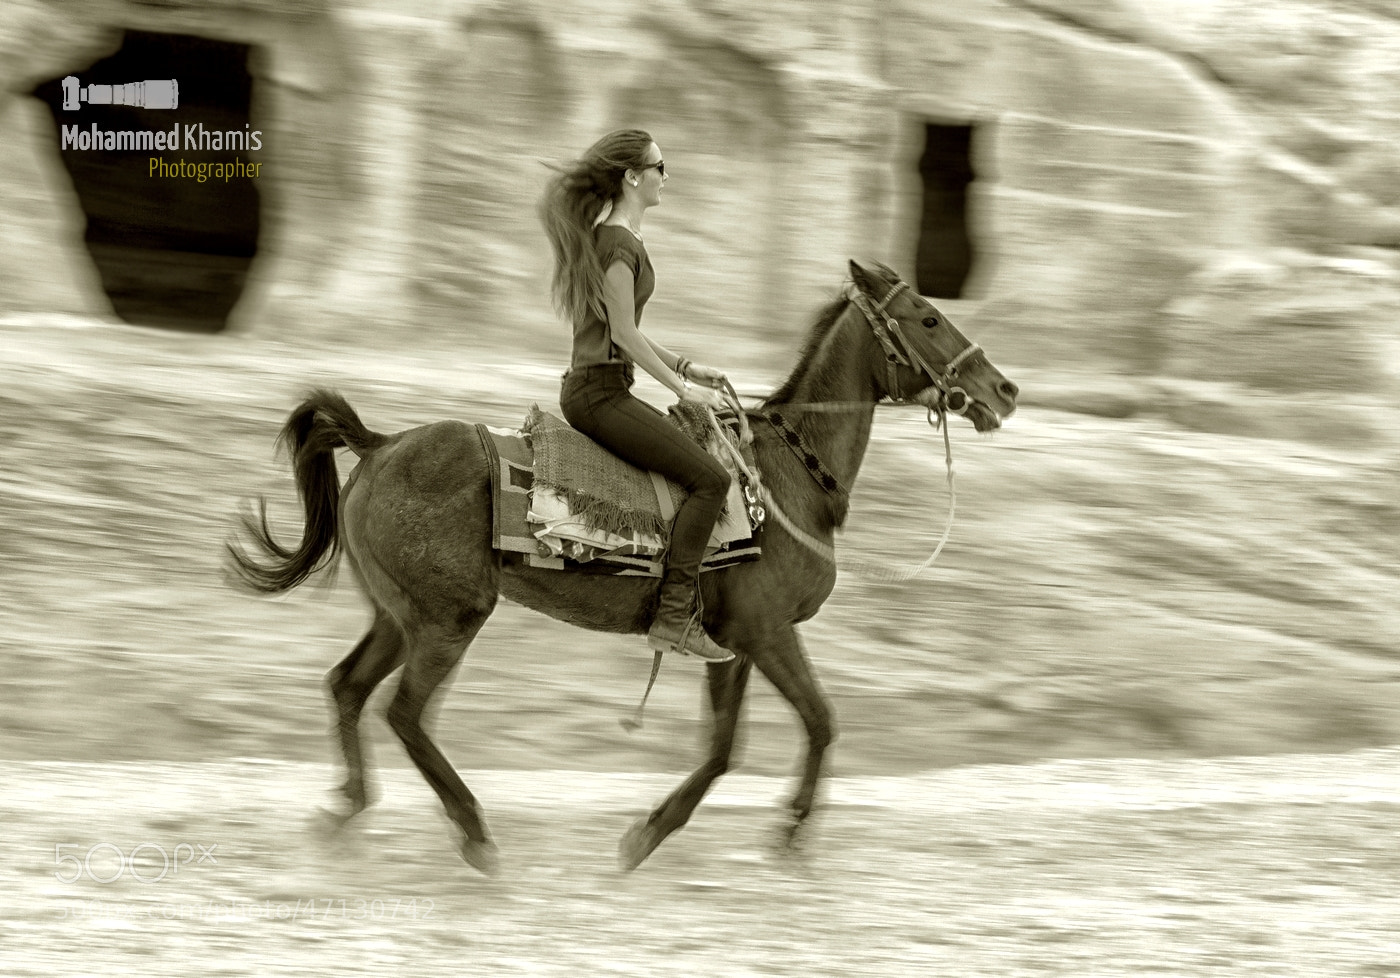 Photograph Horses and imagination by MOHAMMED KHAMIS on 500px